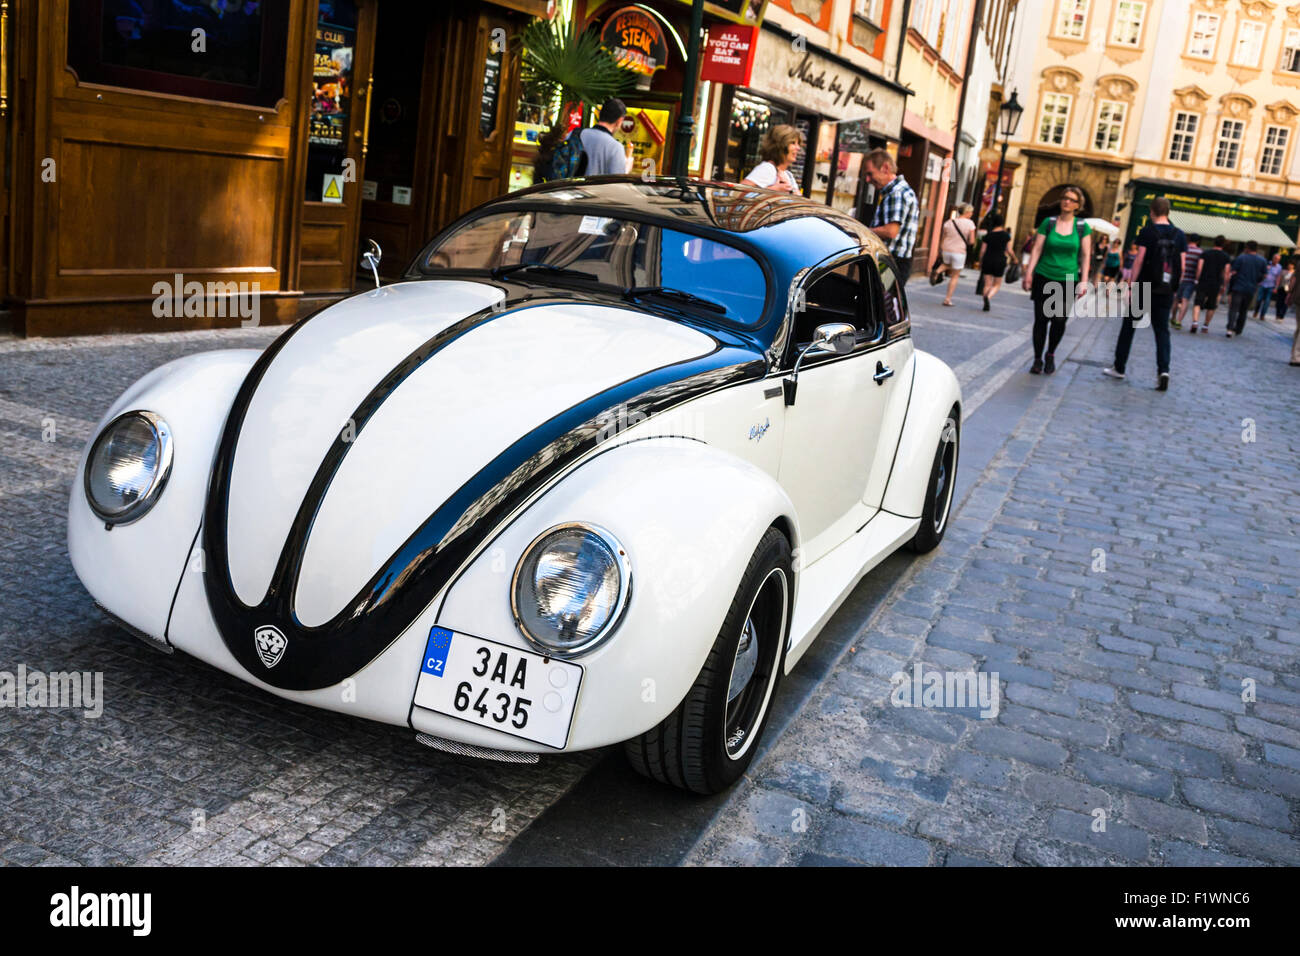 Customised old white Volkswagen Beetle parked on a Prague street, Czech Republic. Stock Photo